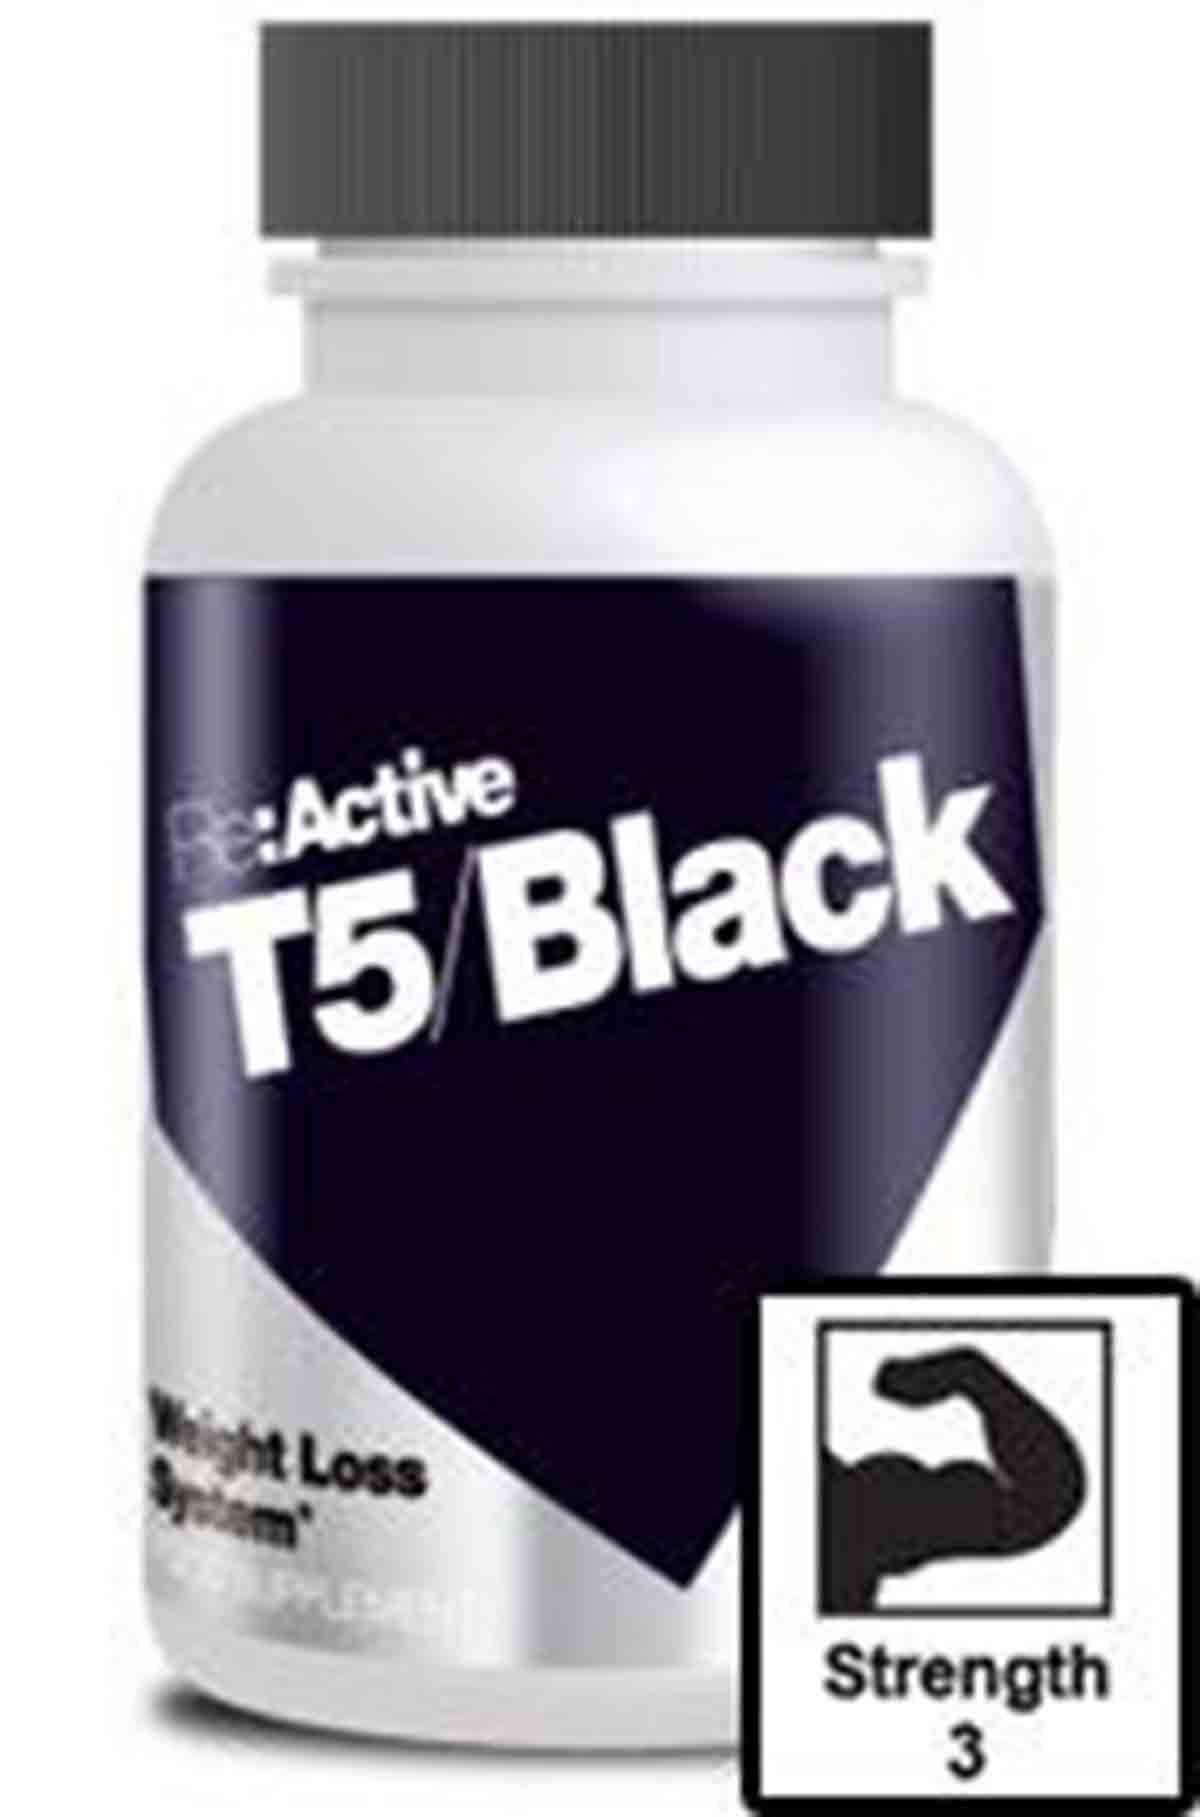 T5 Black Fat Burner